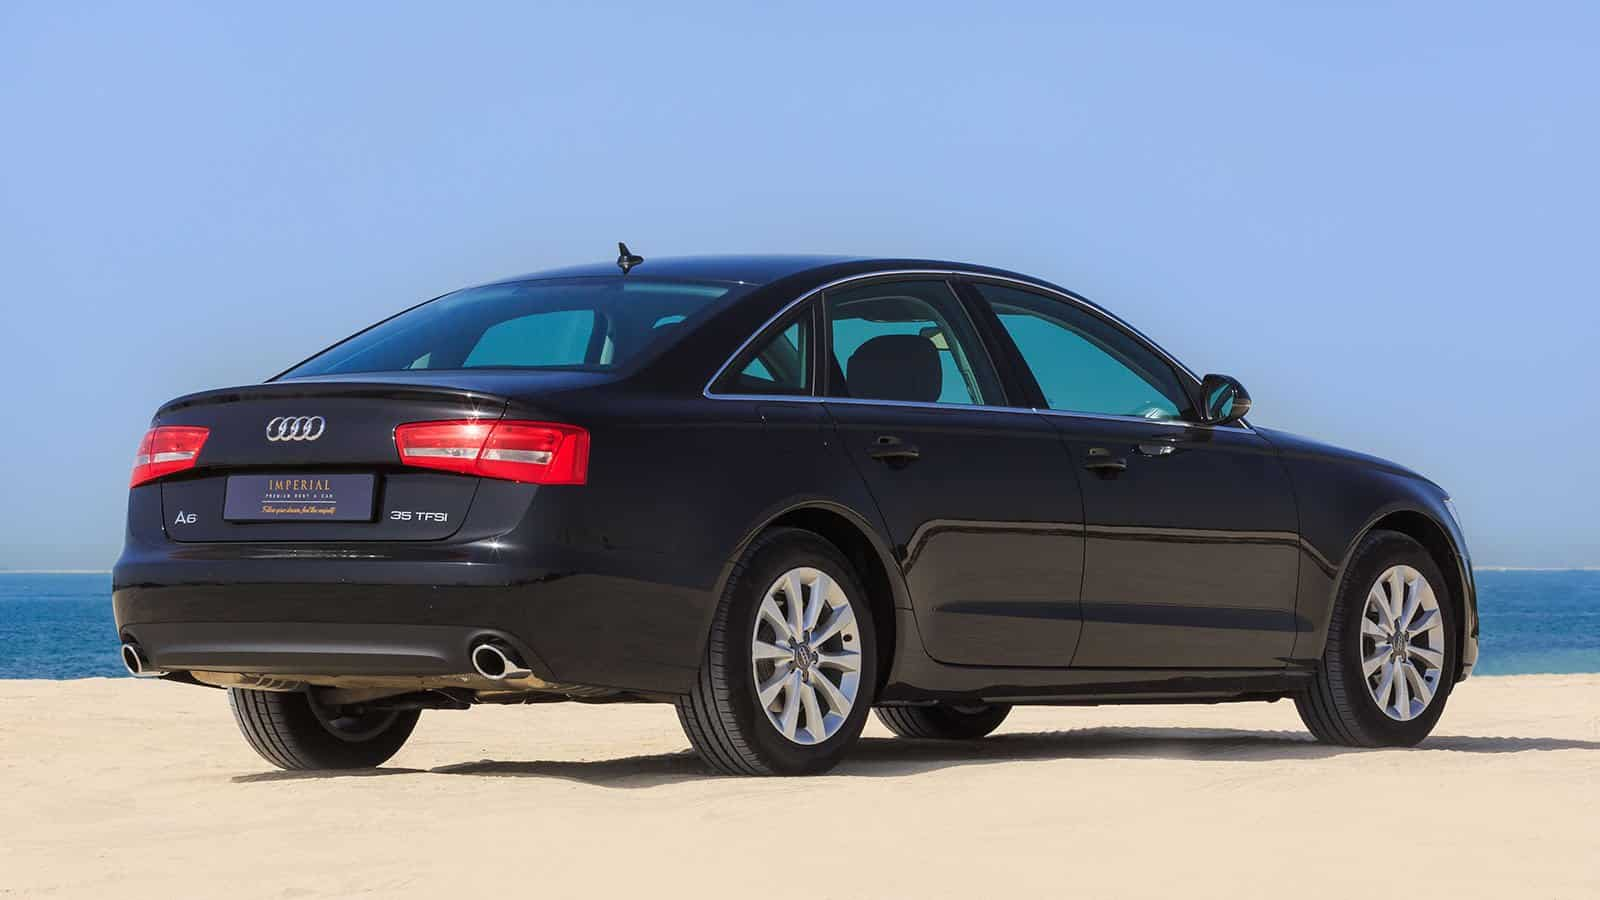 Audi A6 Car Rental Dubai